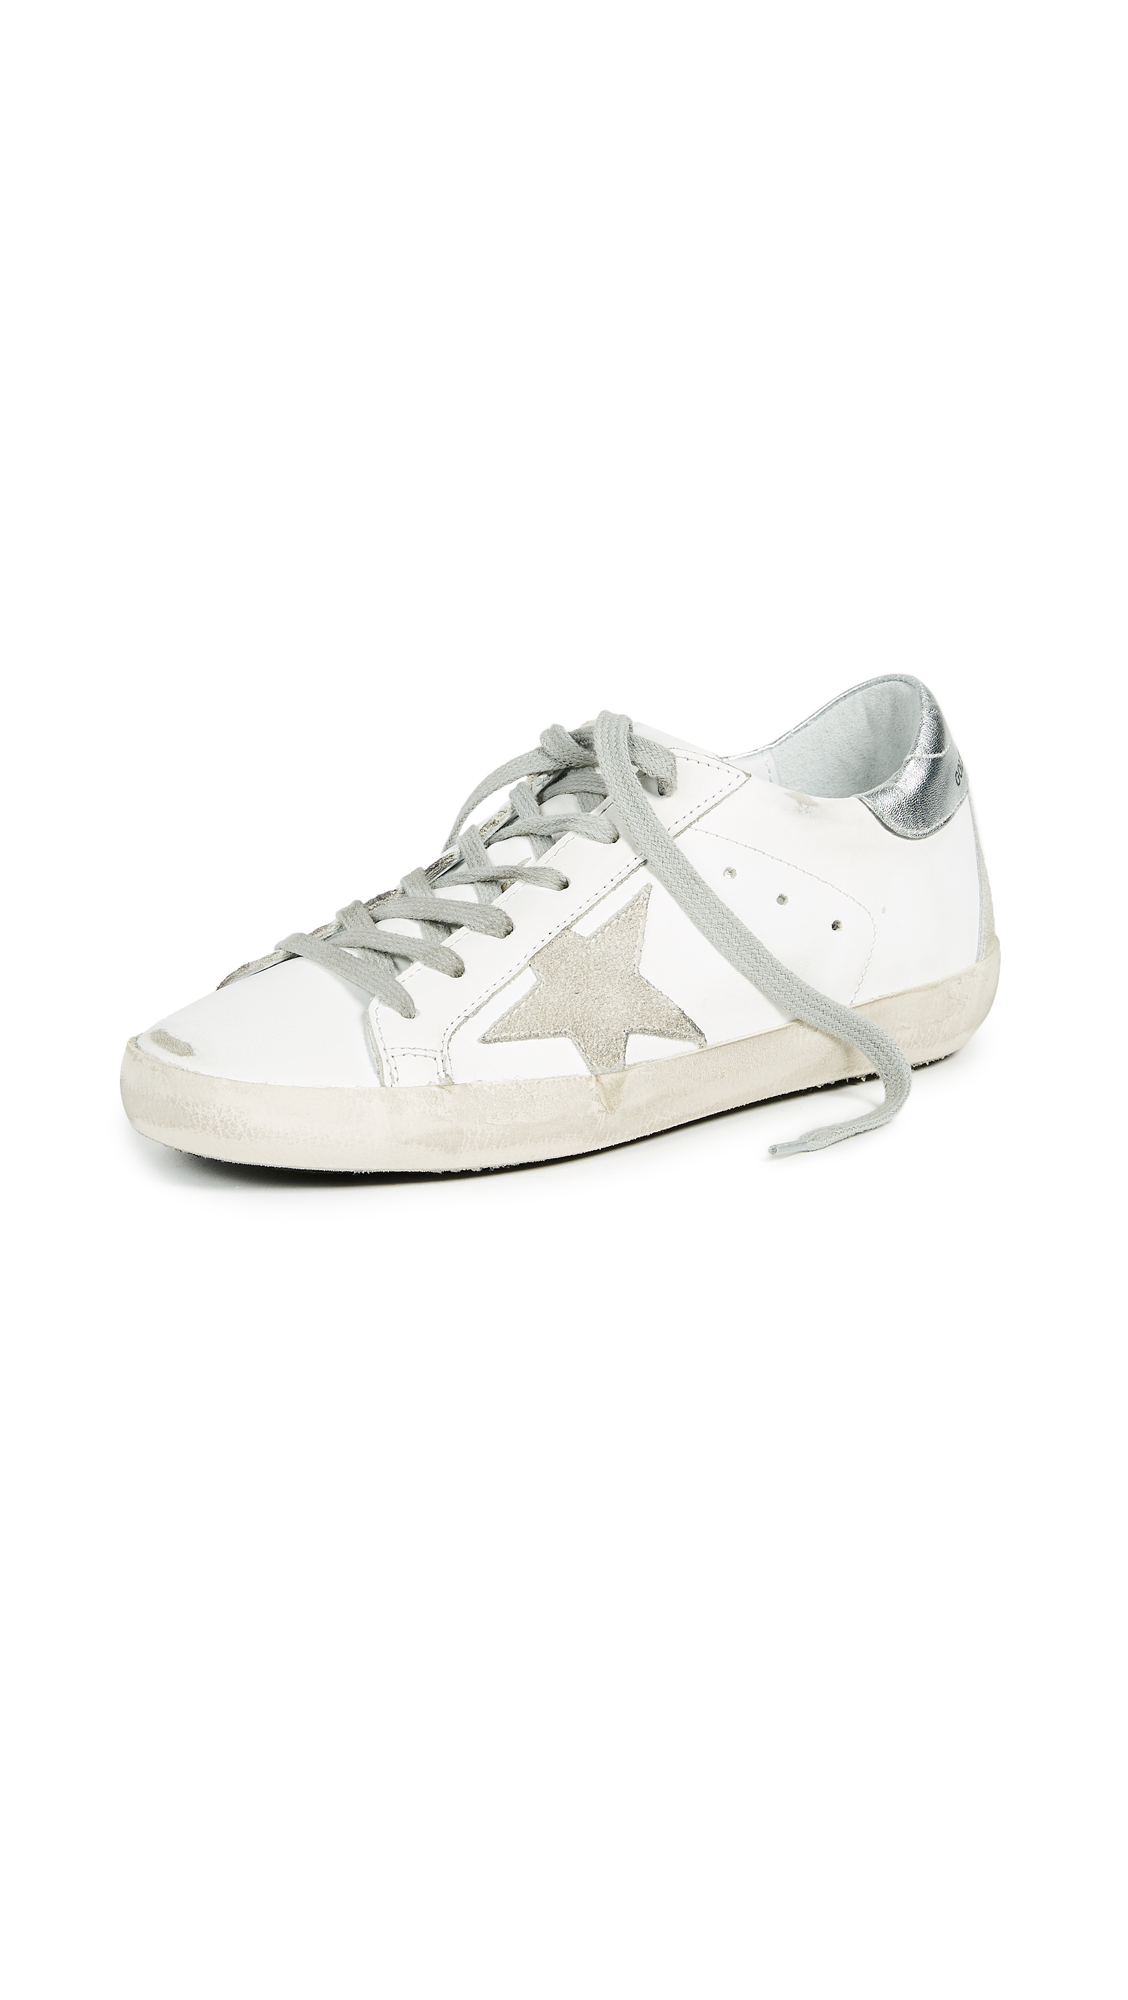 Golden Goose Superstar Sneakers - White/Silver